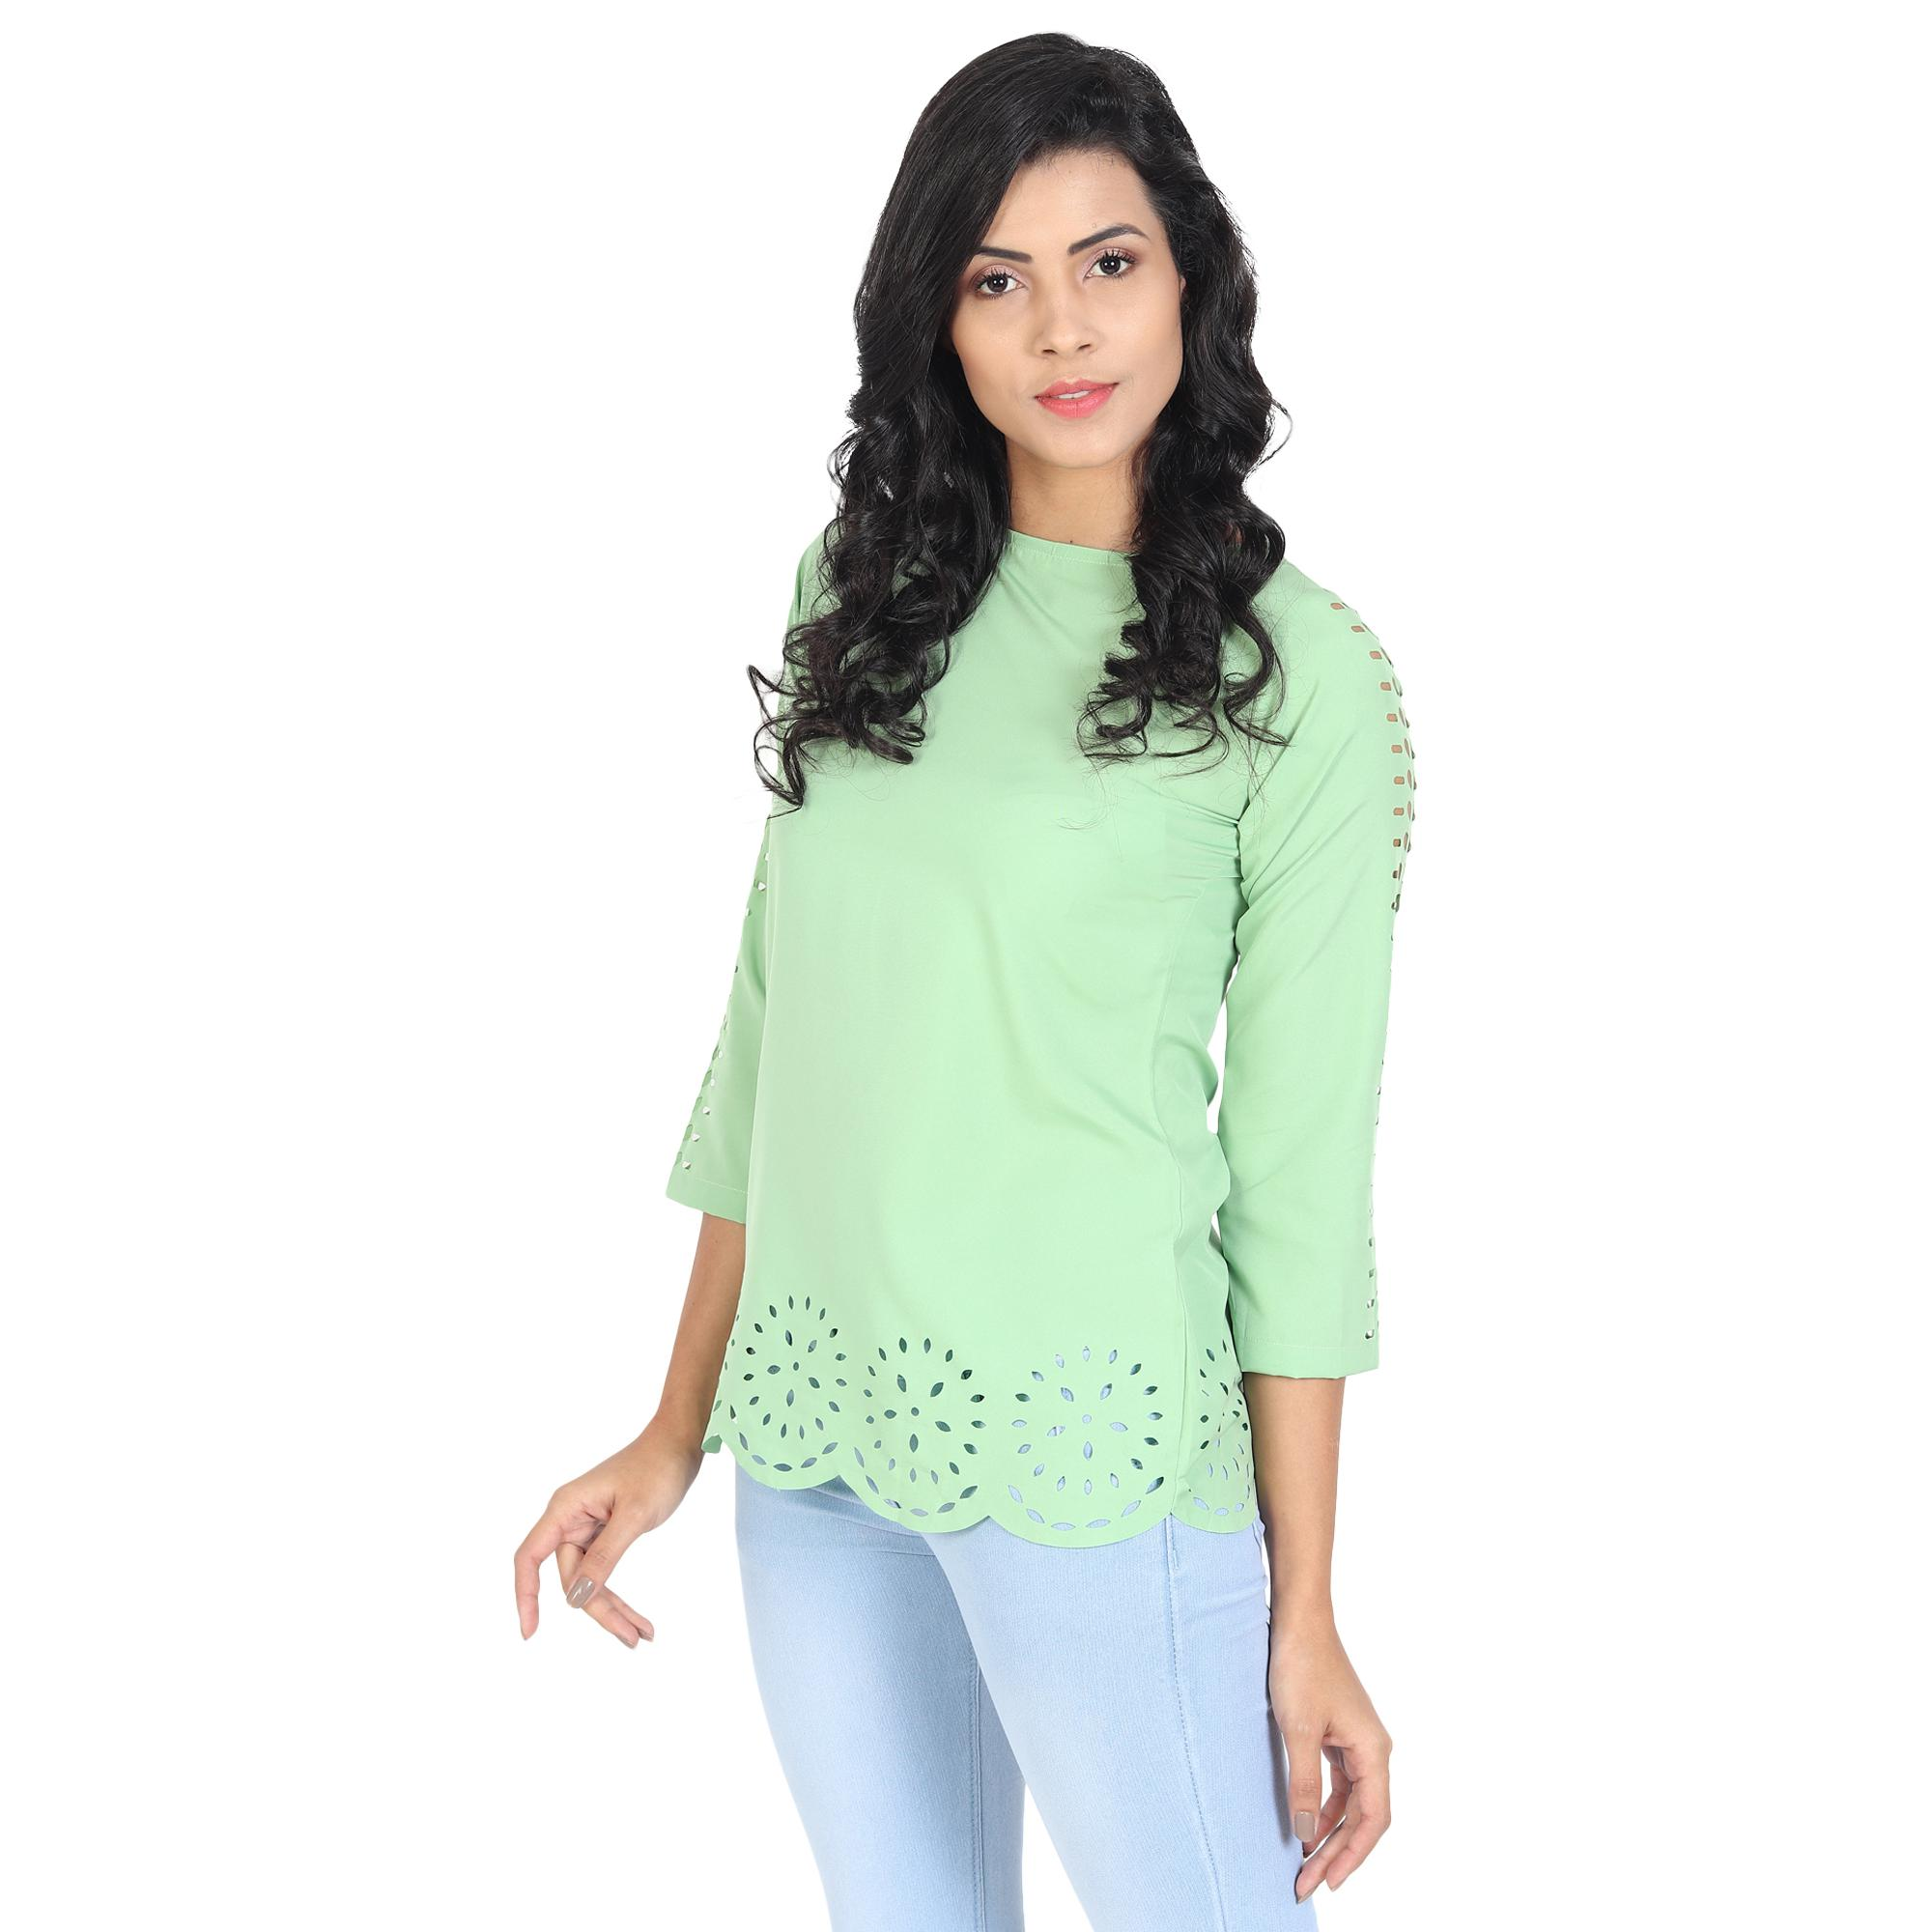 OMADAM - Light Green Colored Casual Wear Crepe Top